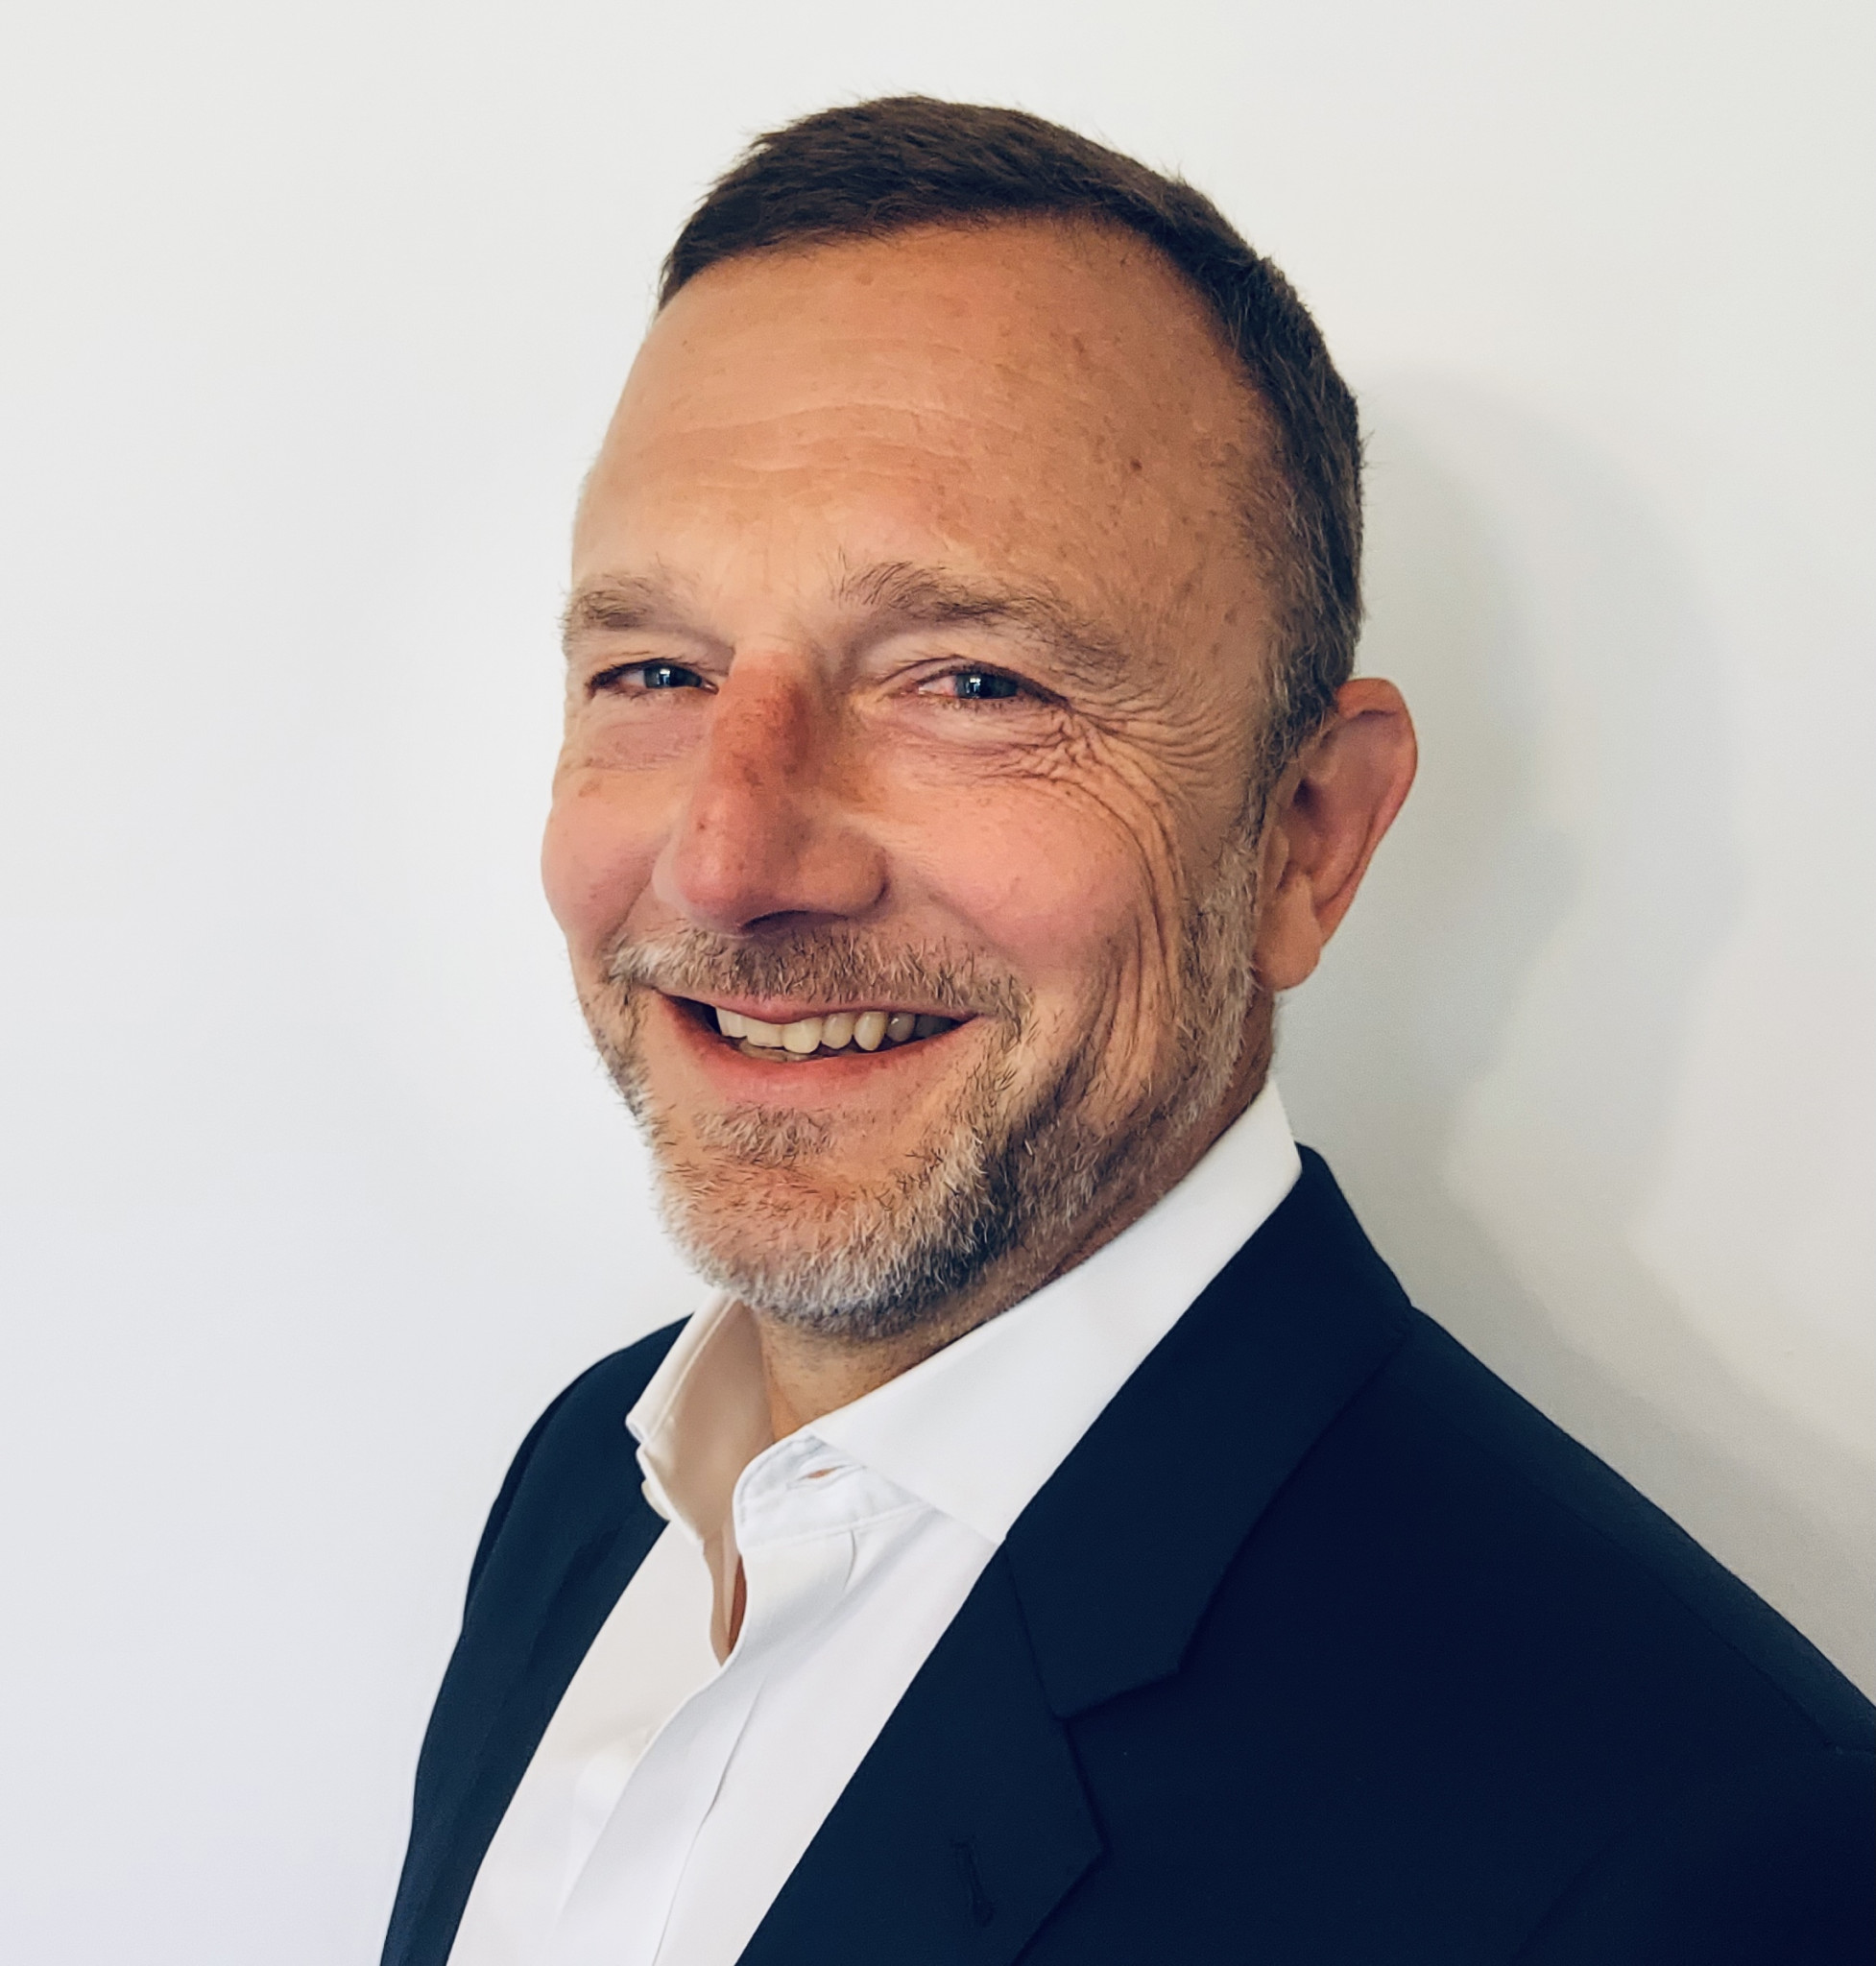 BCS APPOINTS HEAD OF CRITICAL INFRASTRUCTURE